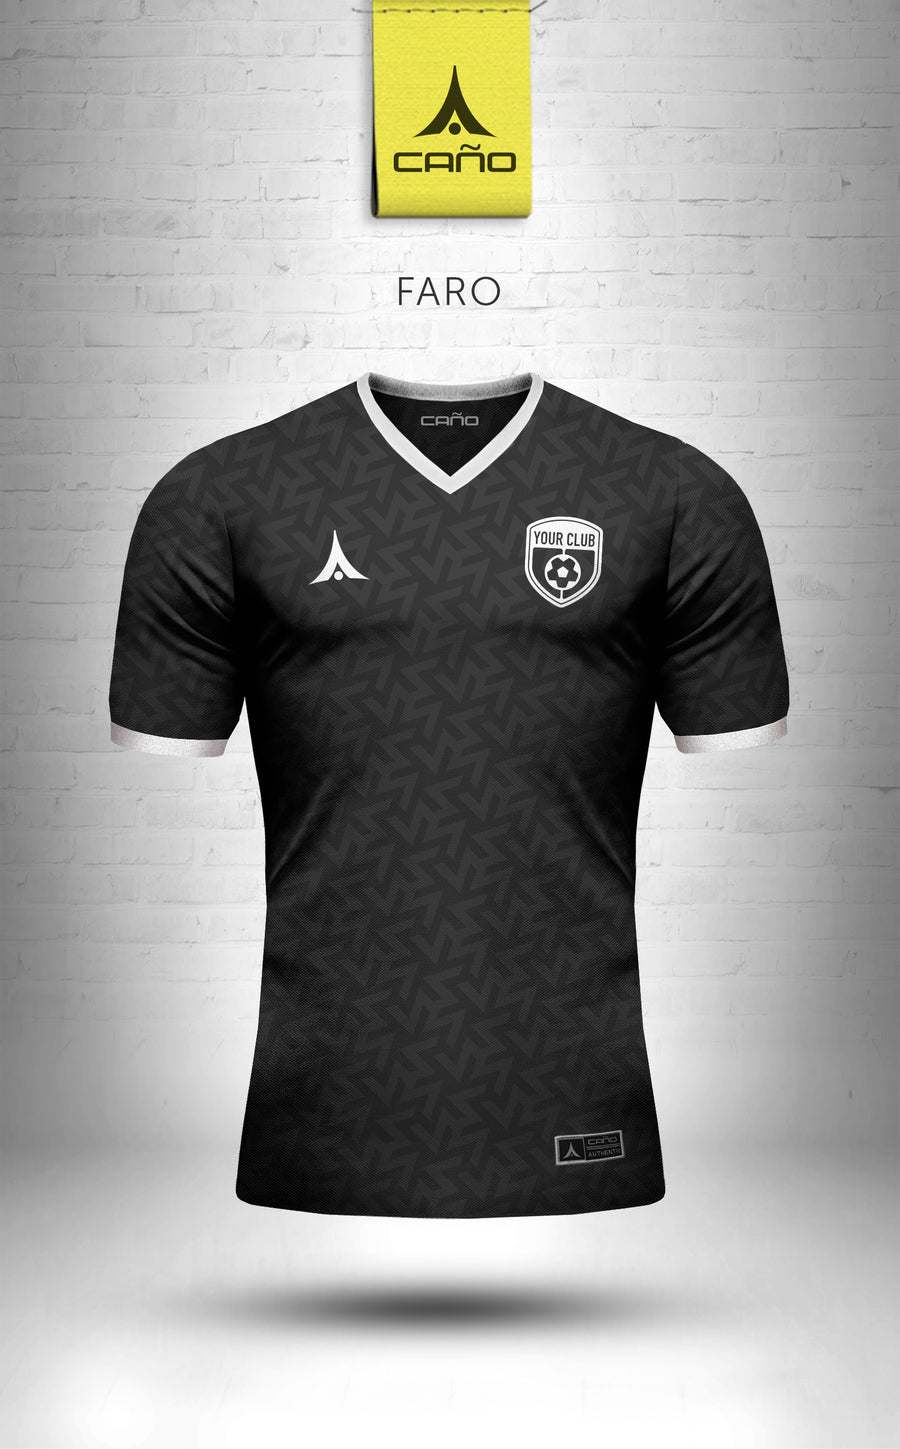 Faro in black/white